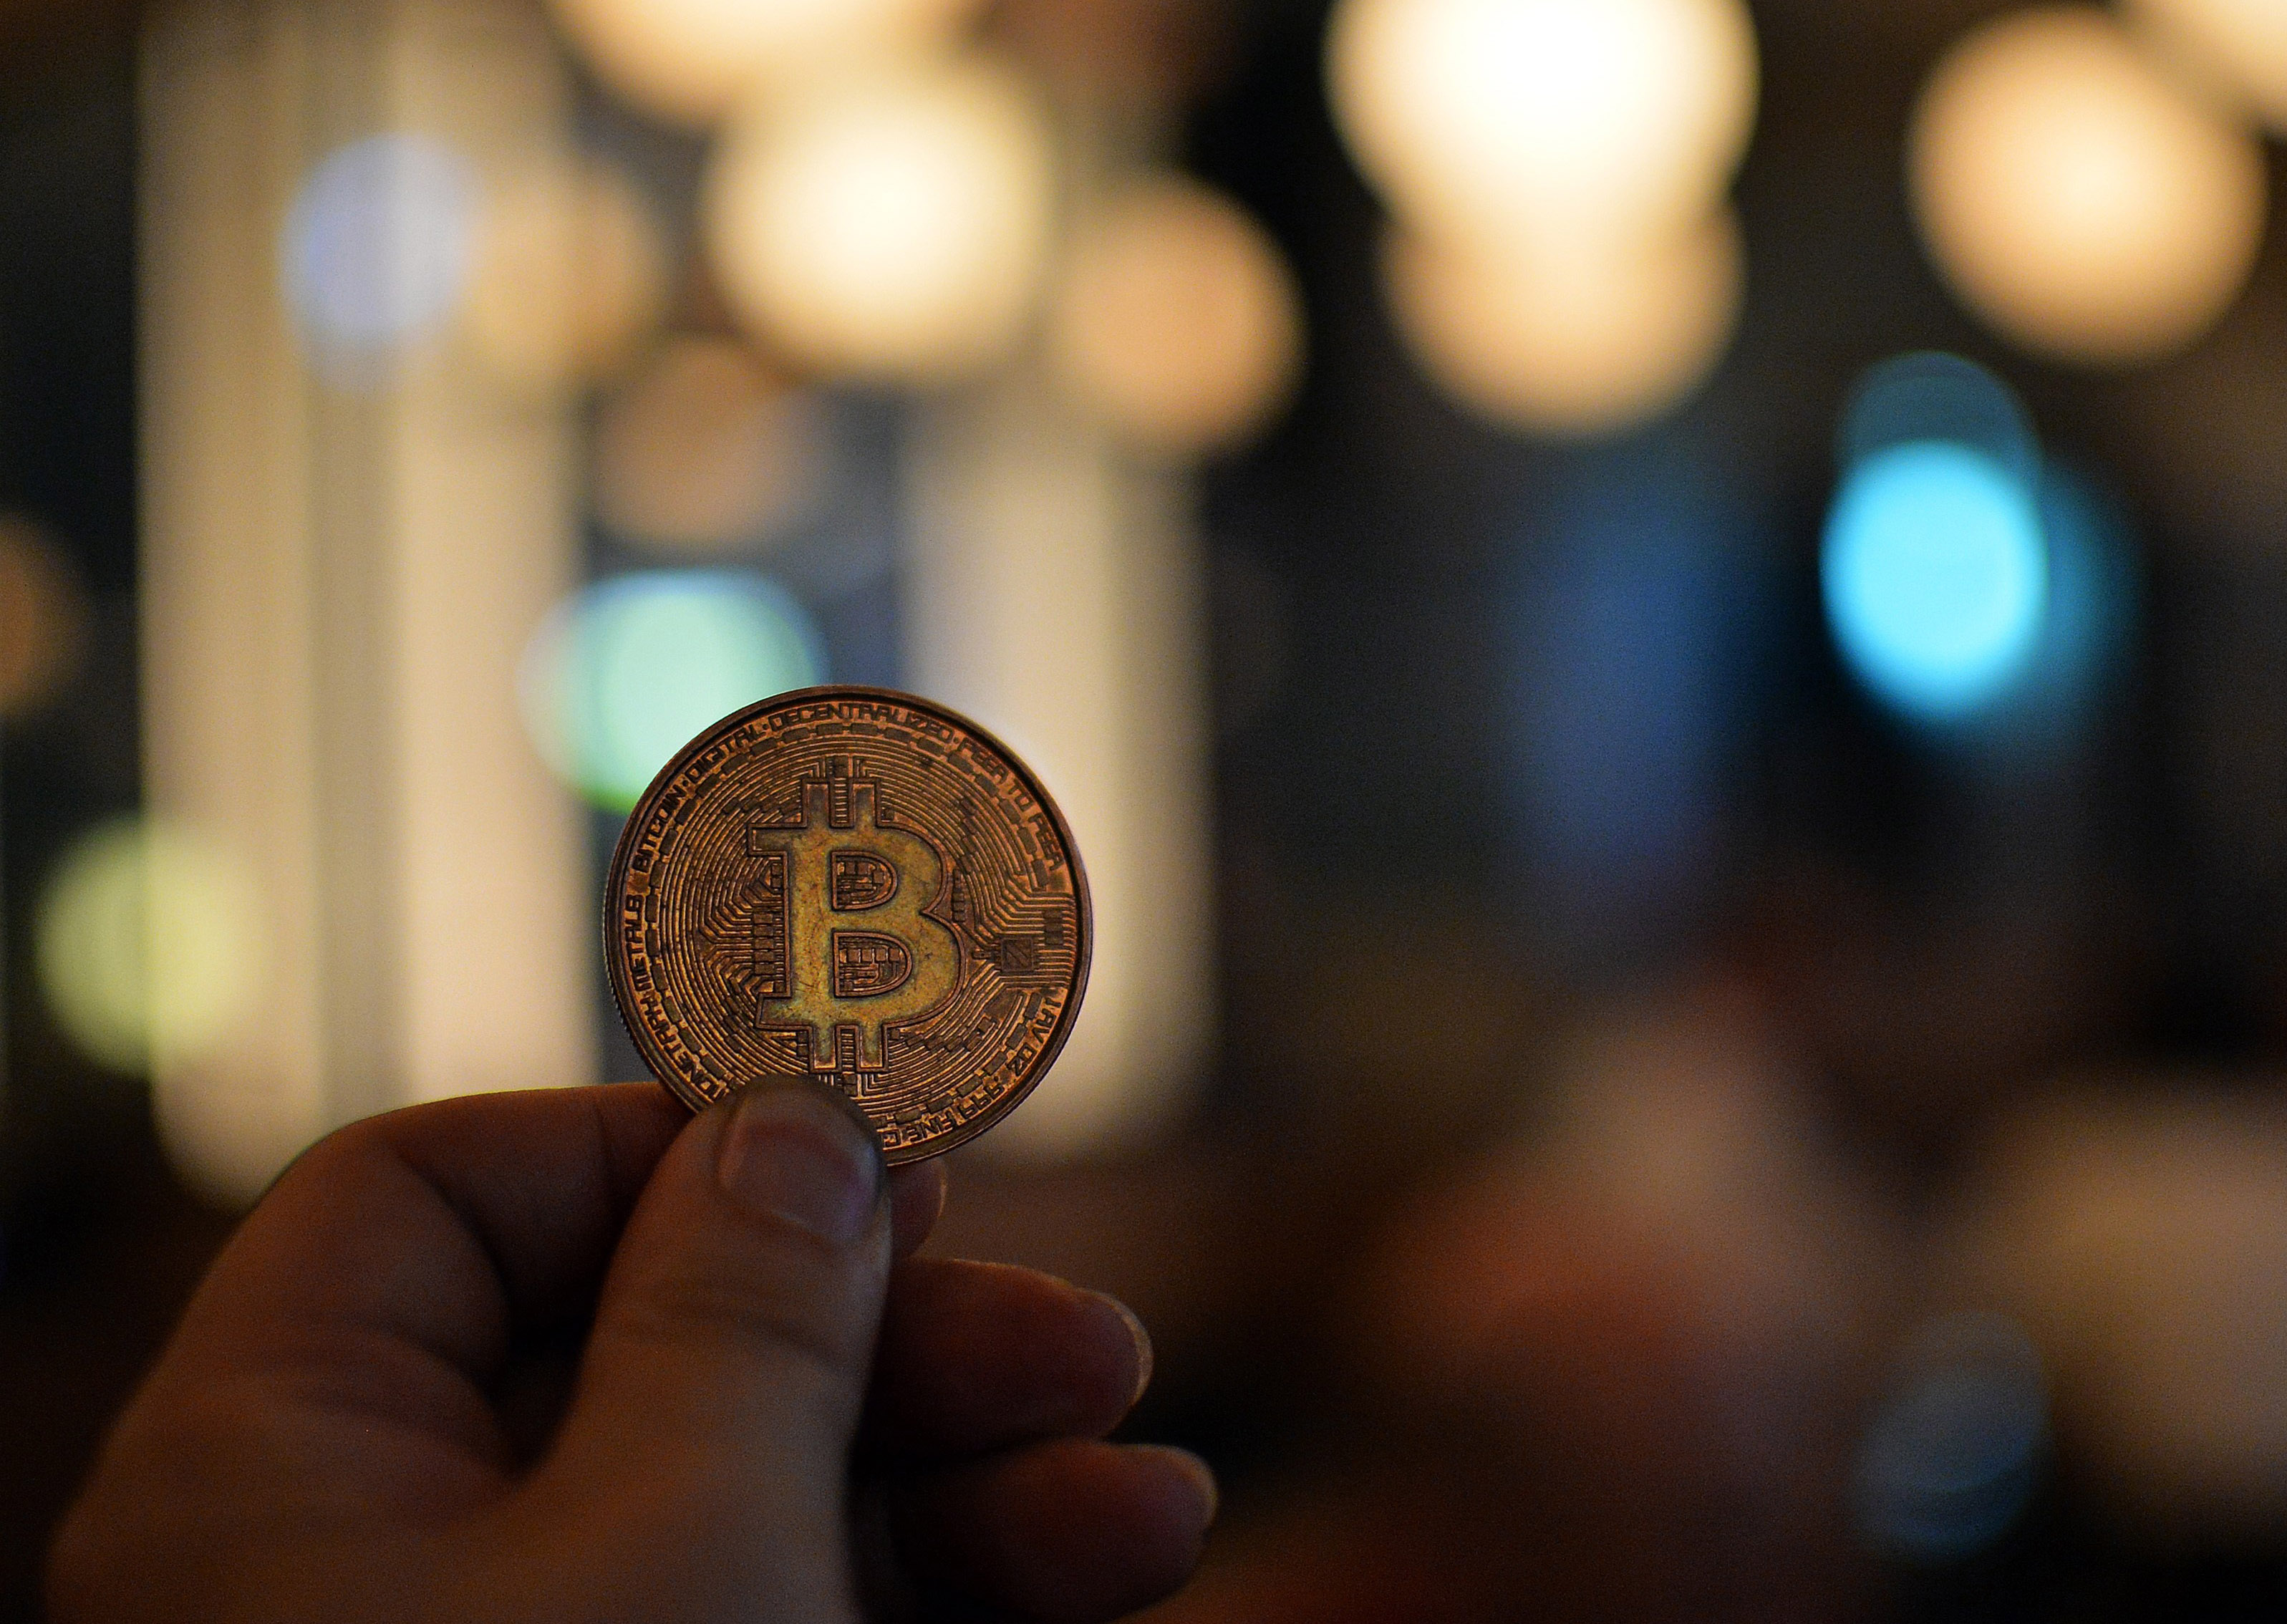 JAPAN-US-IT-FINANCE-BITCOIN -COMPUTERS-HACKING-SERVICES-BANKING